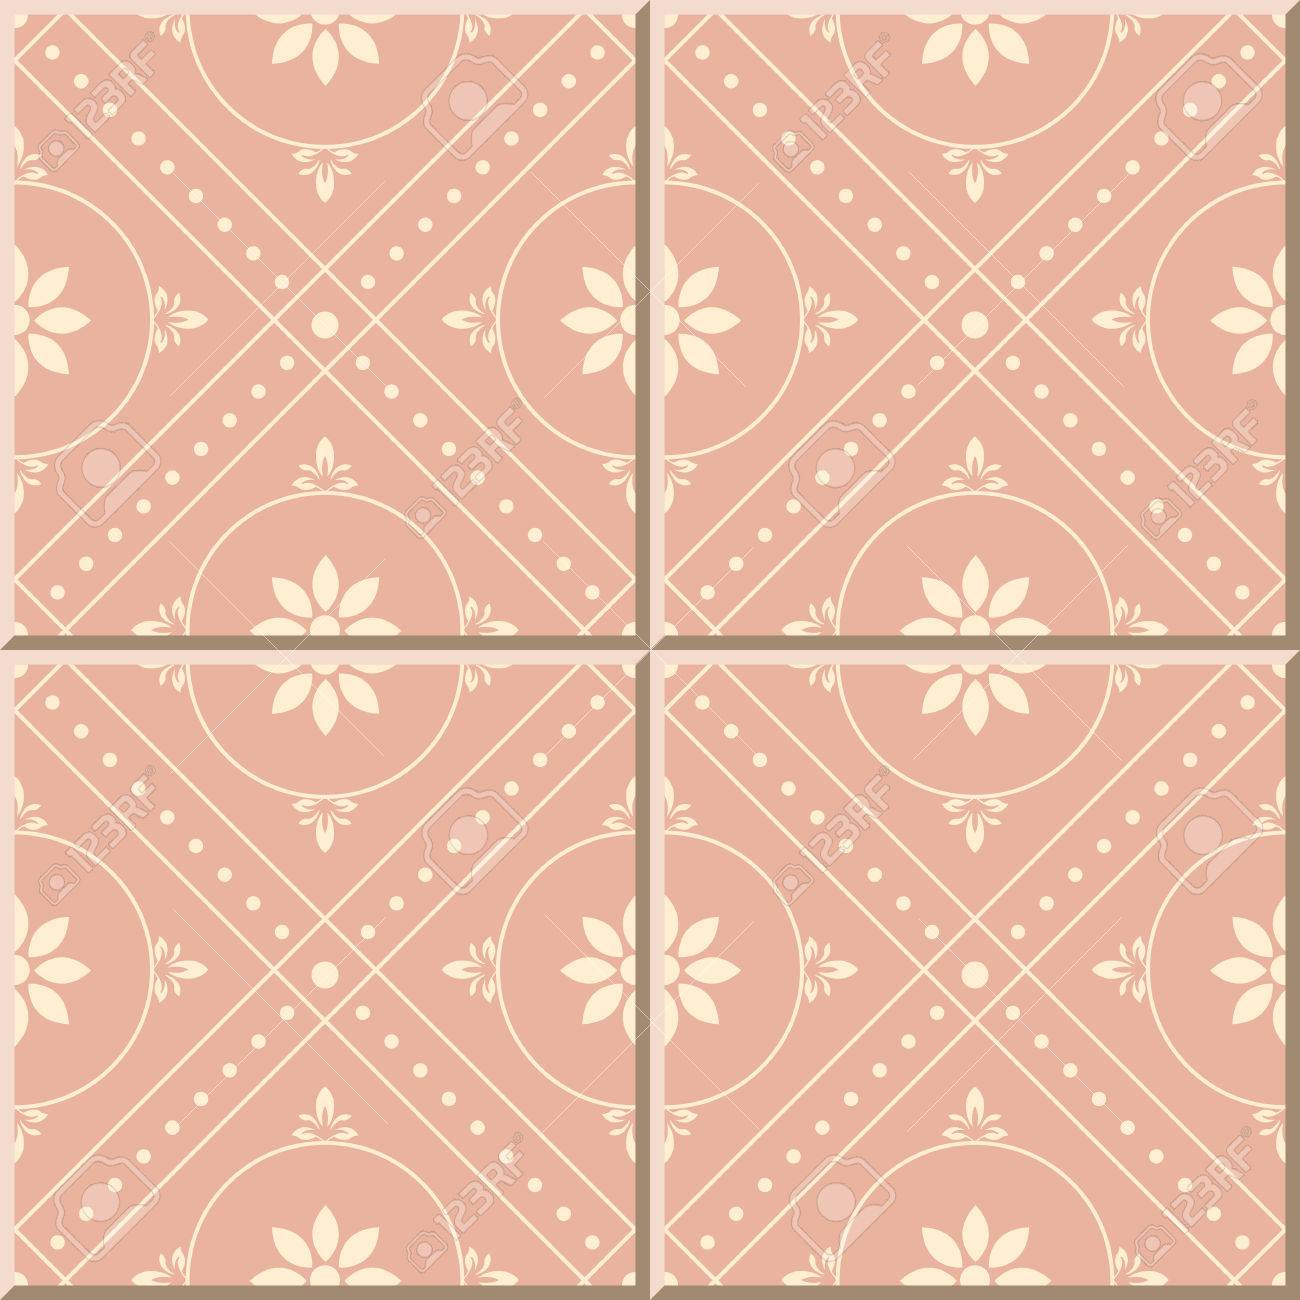 ceramic tile pattern 475 pink round check dot line flower royalty